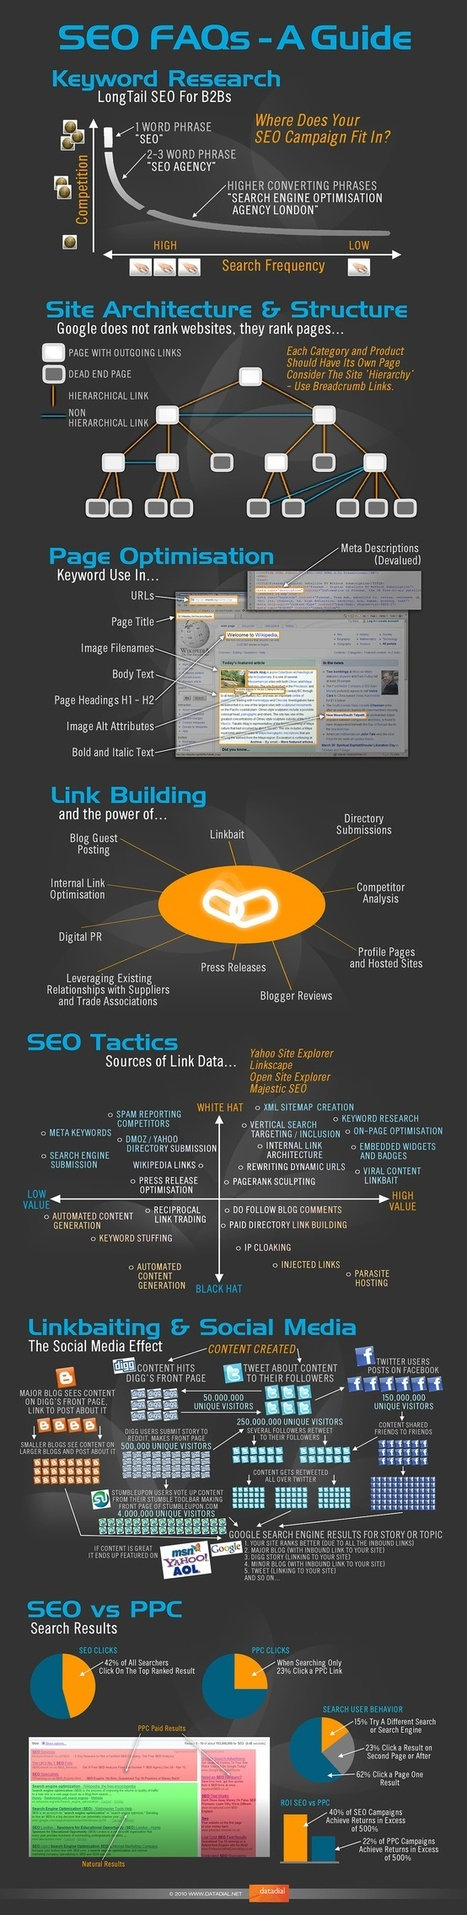 SEO FAQ's Guide [Infographic] | Everyday things you might like | Scoop.it